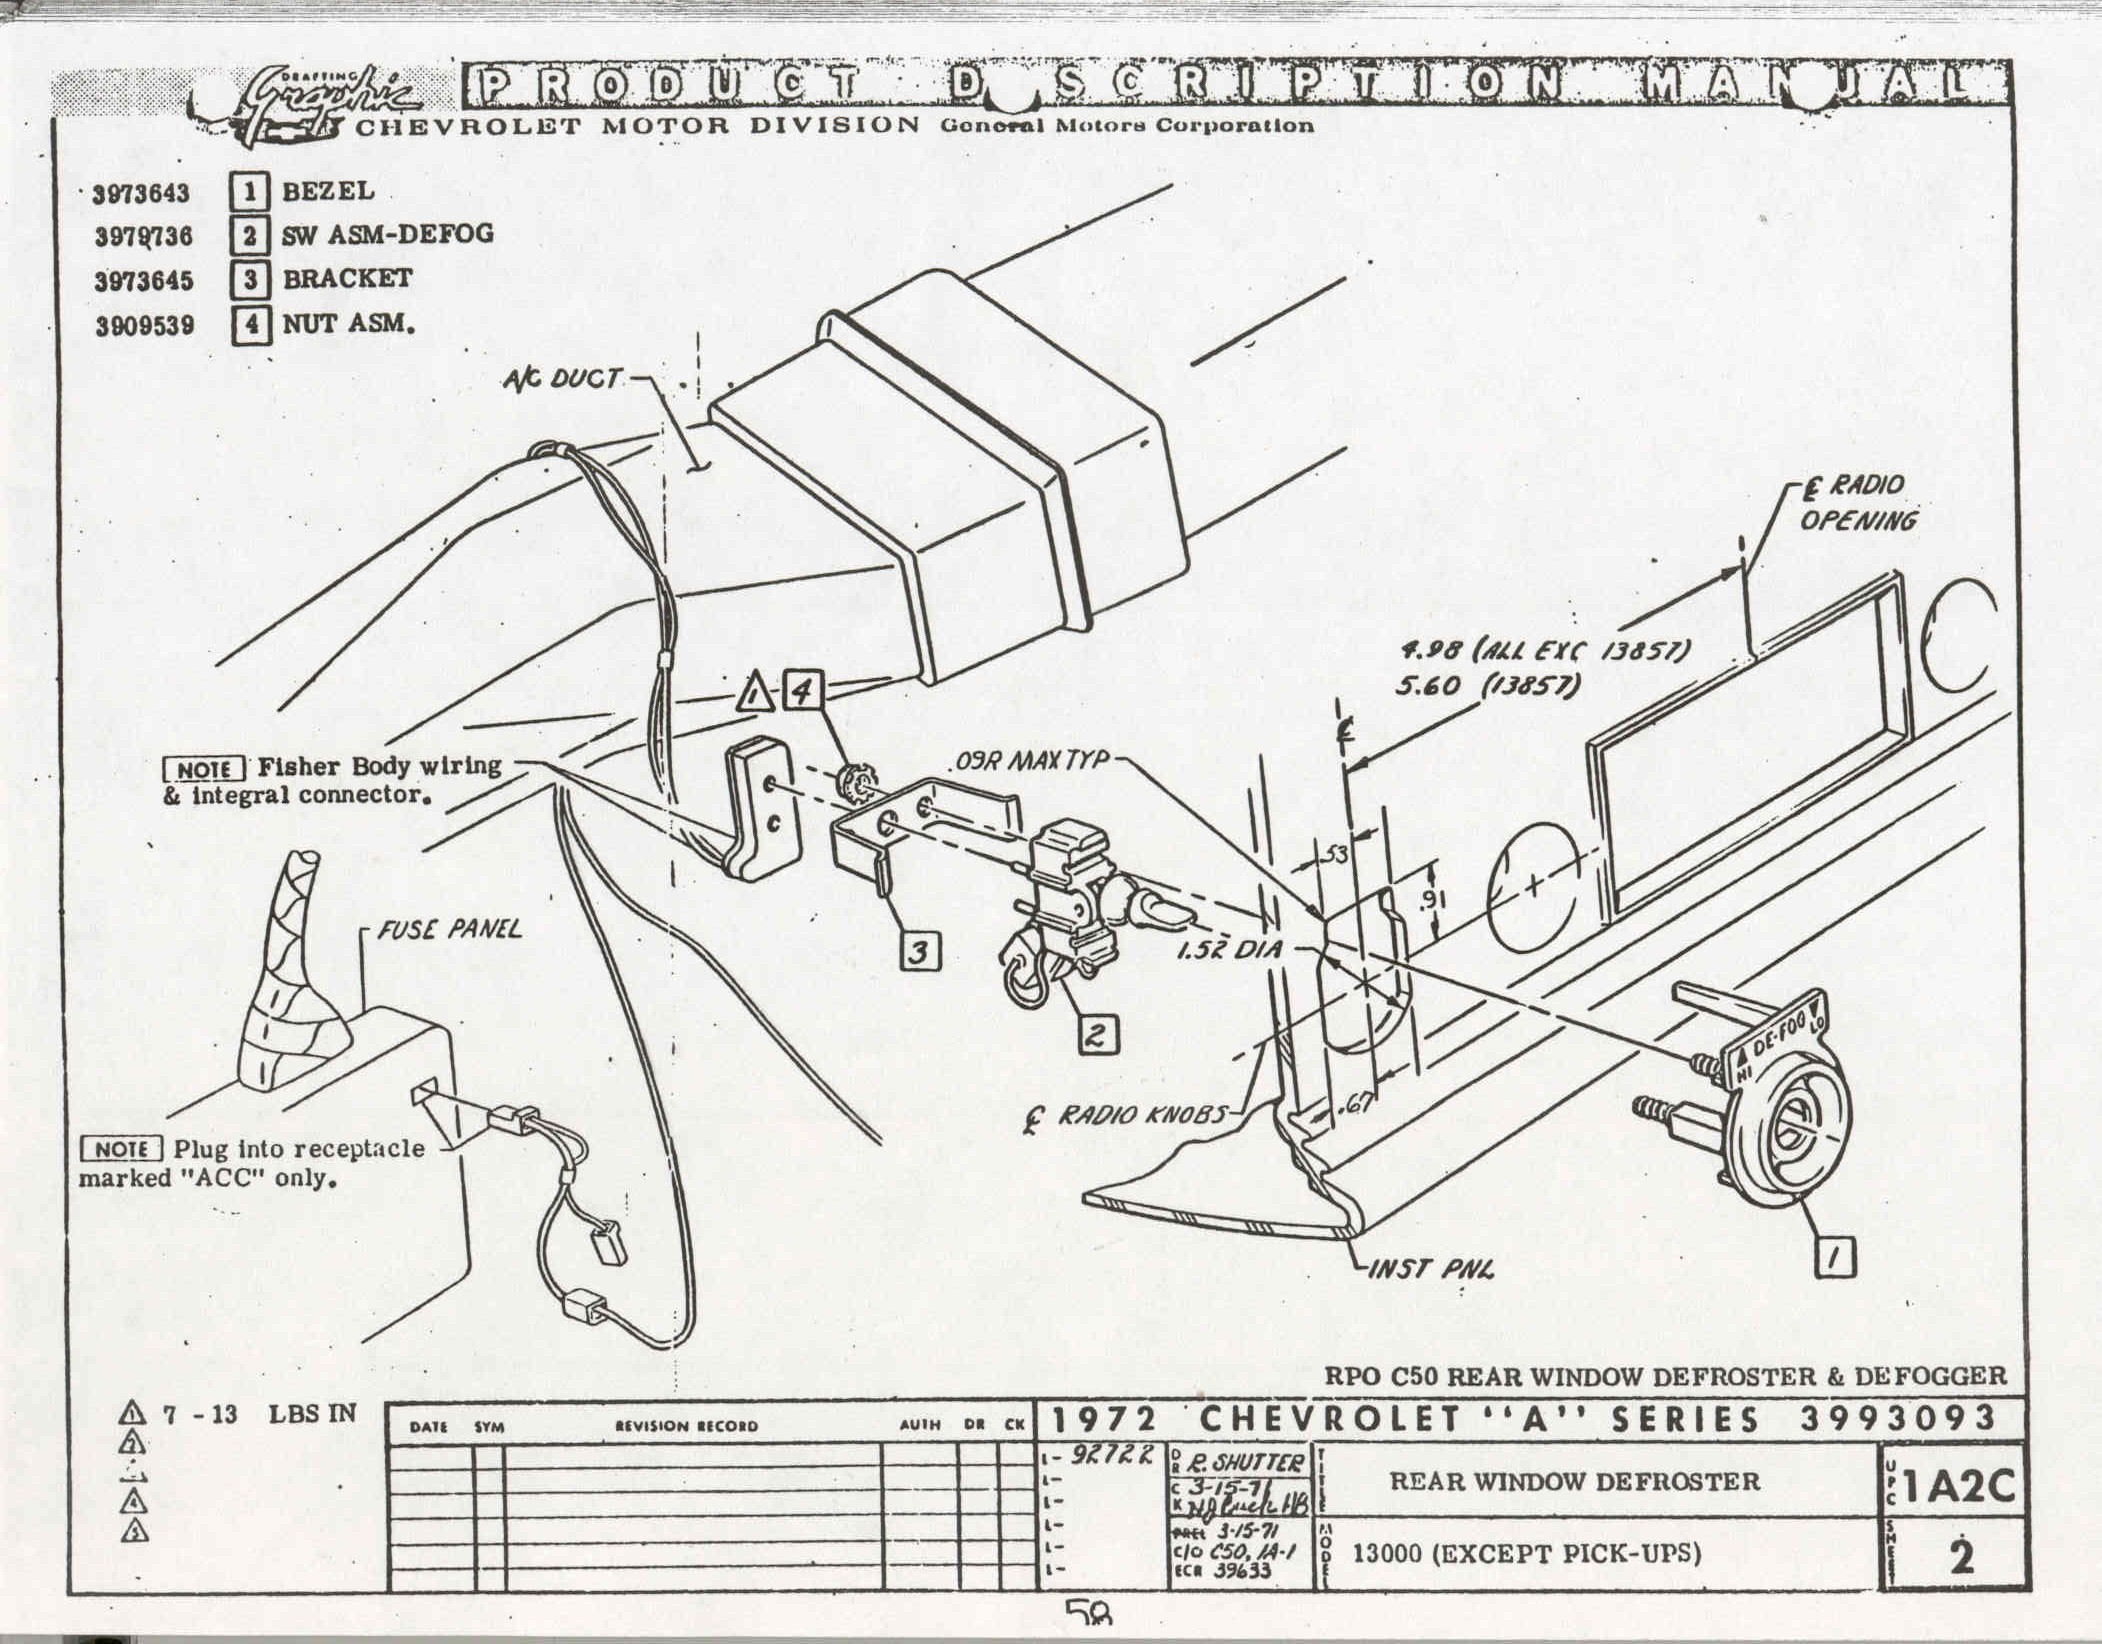 1964 Impala Fuel Gauge Wiring Diagram Custom 1965 Chevy Free Download Chevelle Tach Enthusiast Diagrams U2022 Rh Rasalibre Co Automotive 2012 Radio